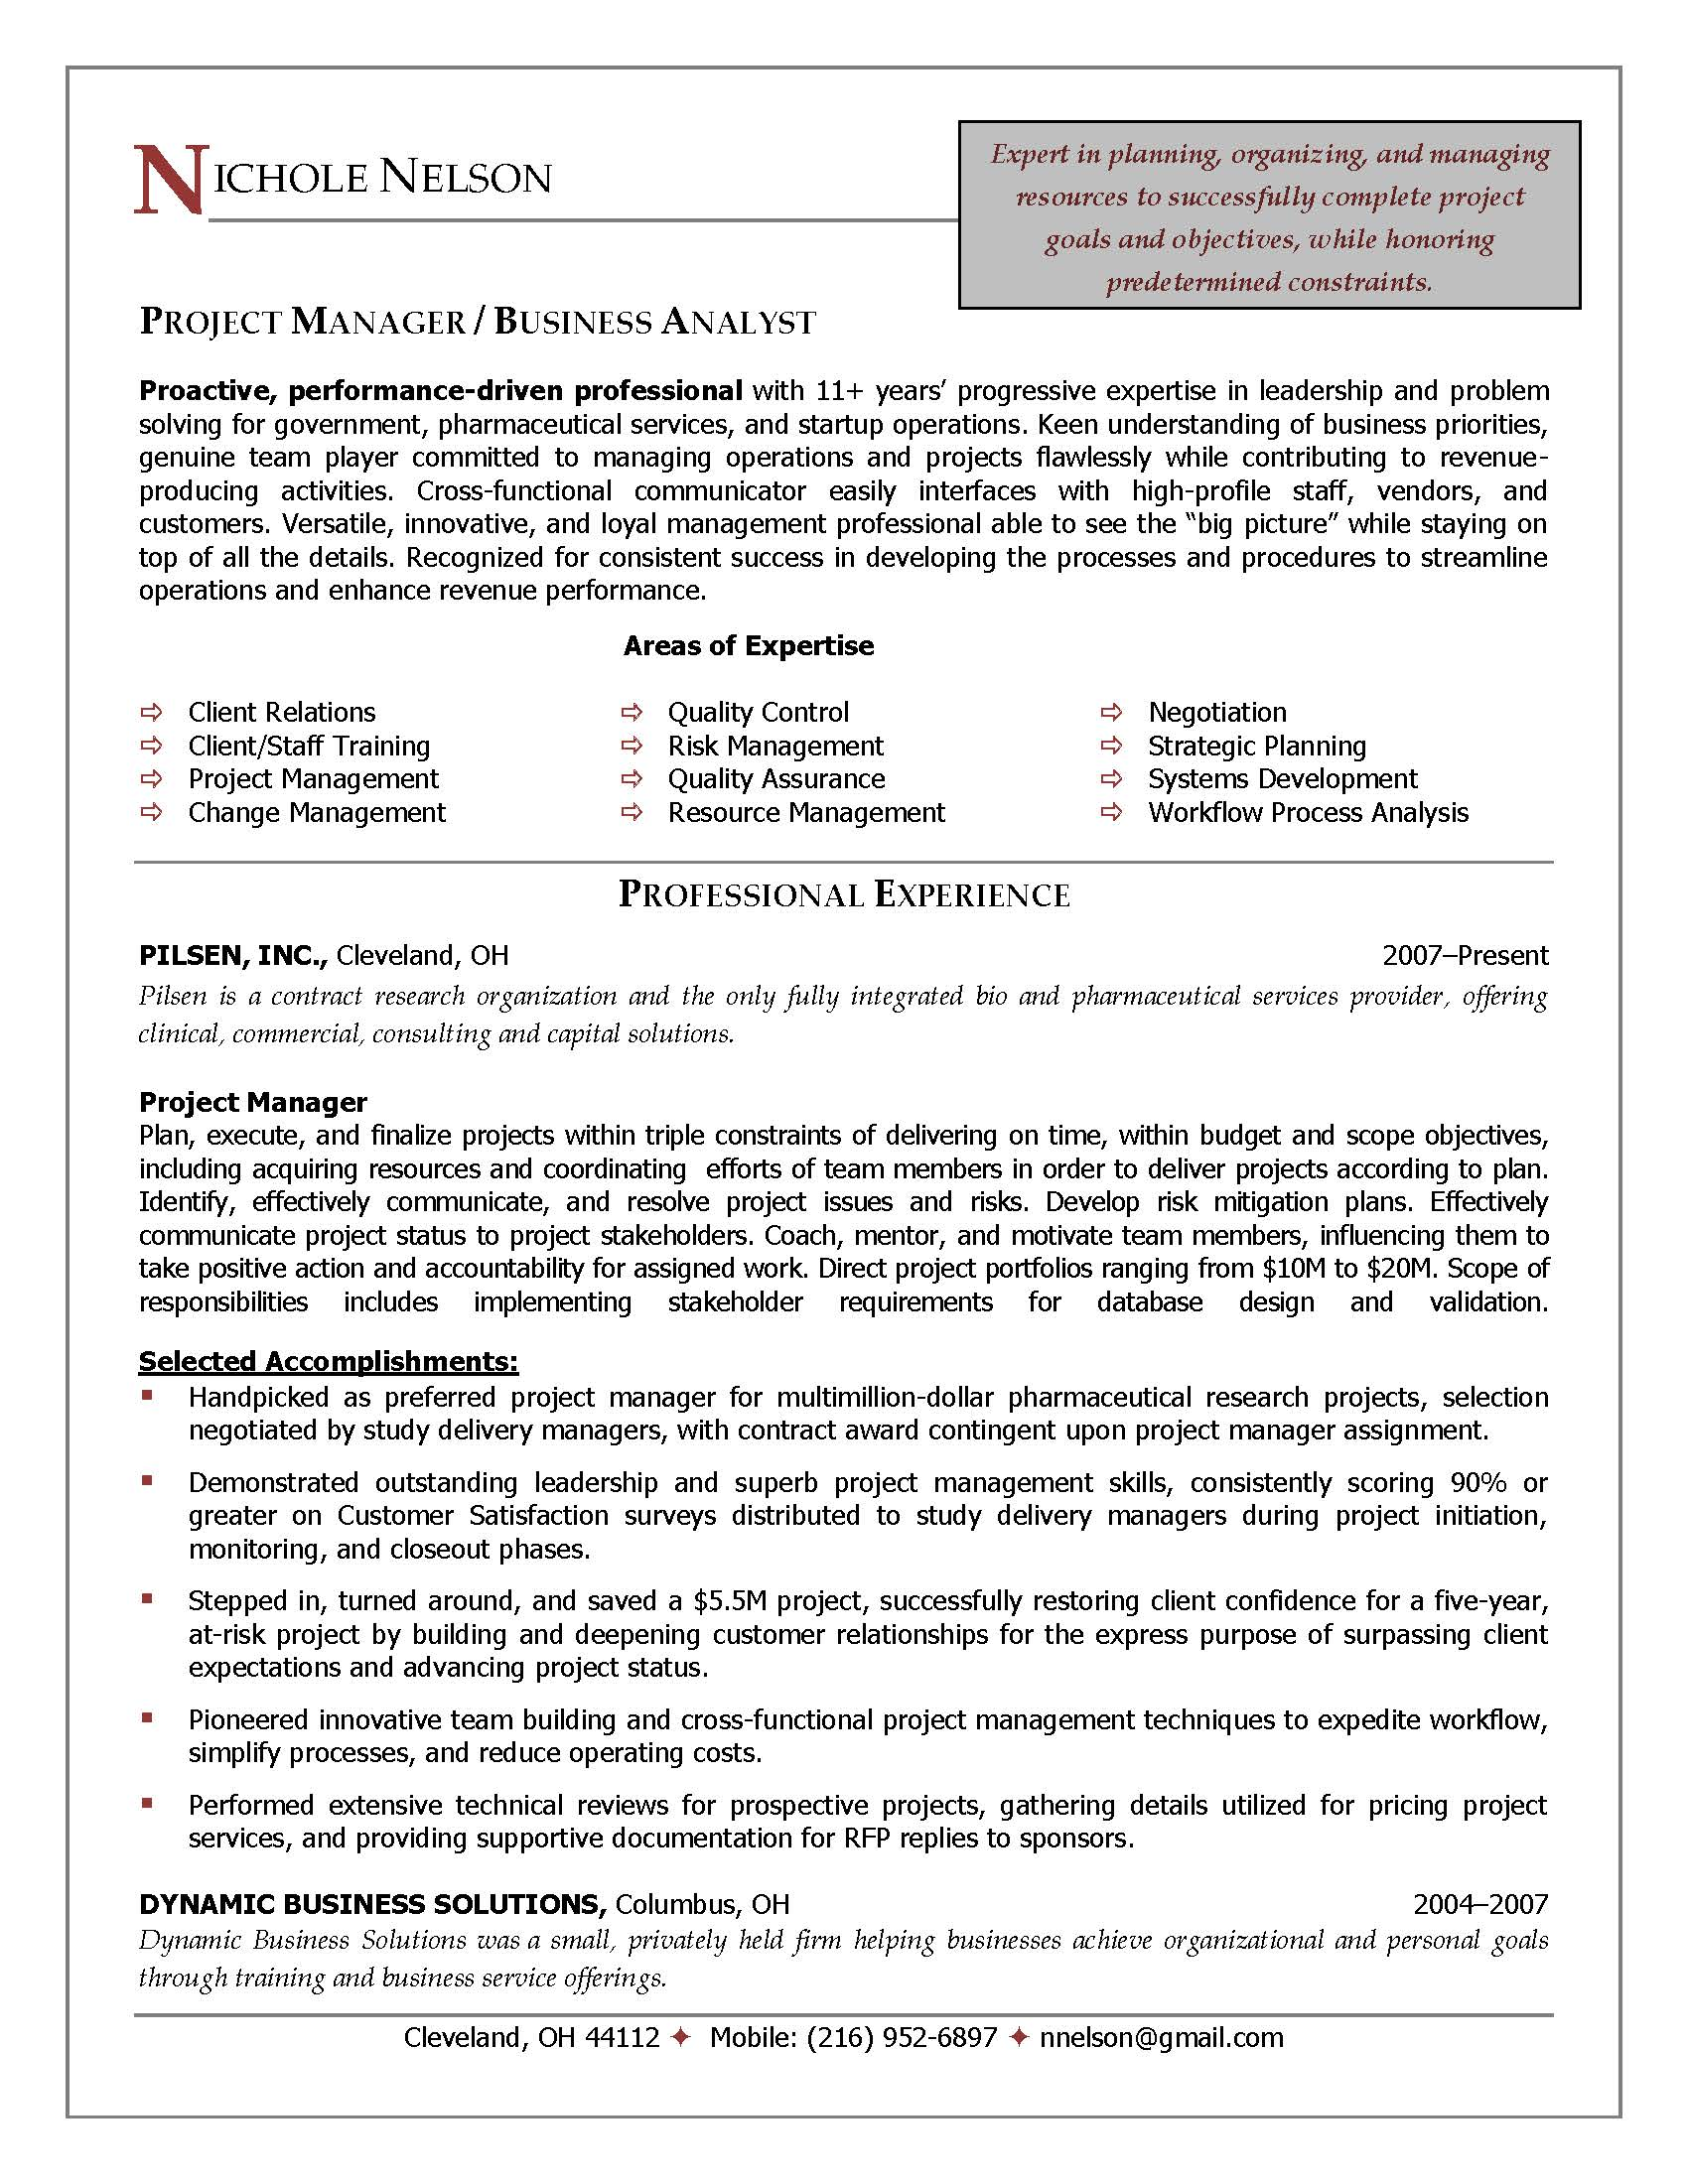 Project Manager Resume Sample, Provided By Elite Resume Writing Services  Sample Project Management Resume